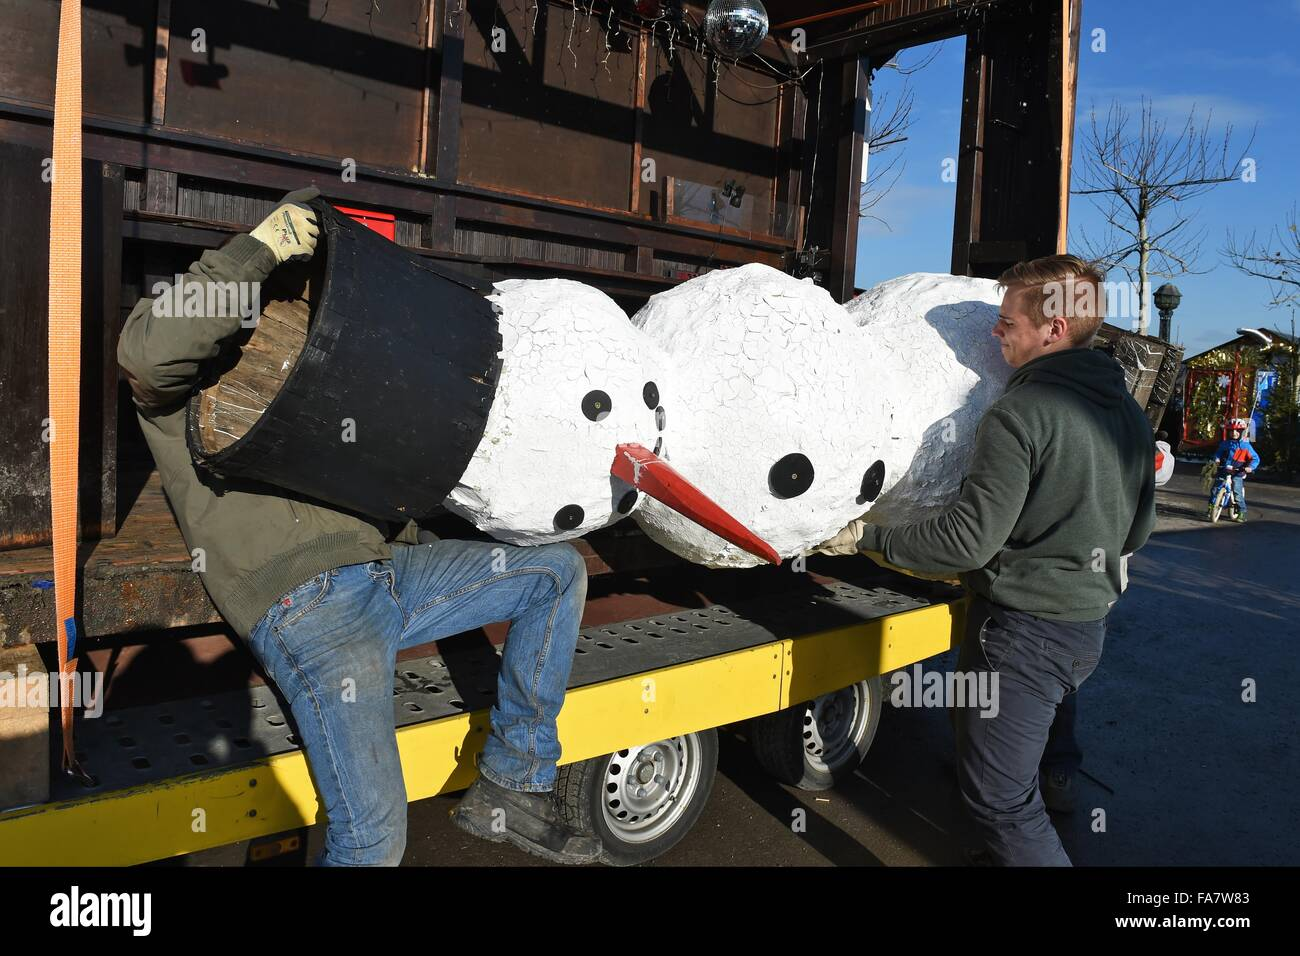 People lift a cardbpard snowman onto a trailer beside lake Constance ...